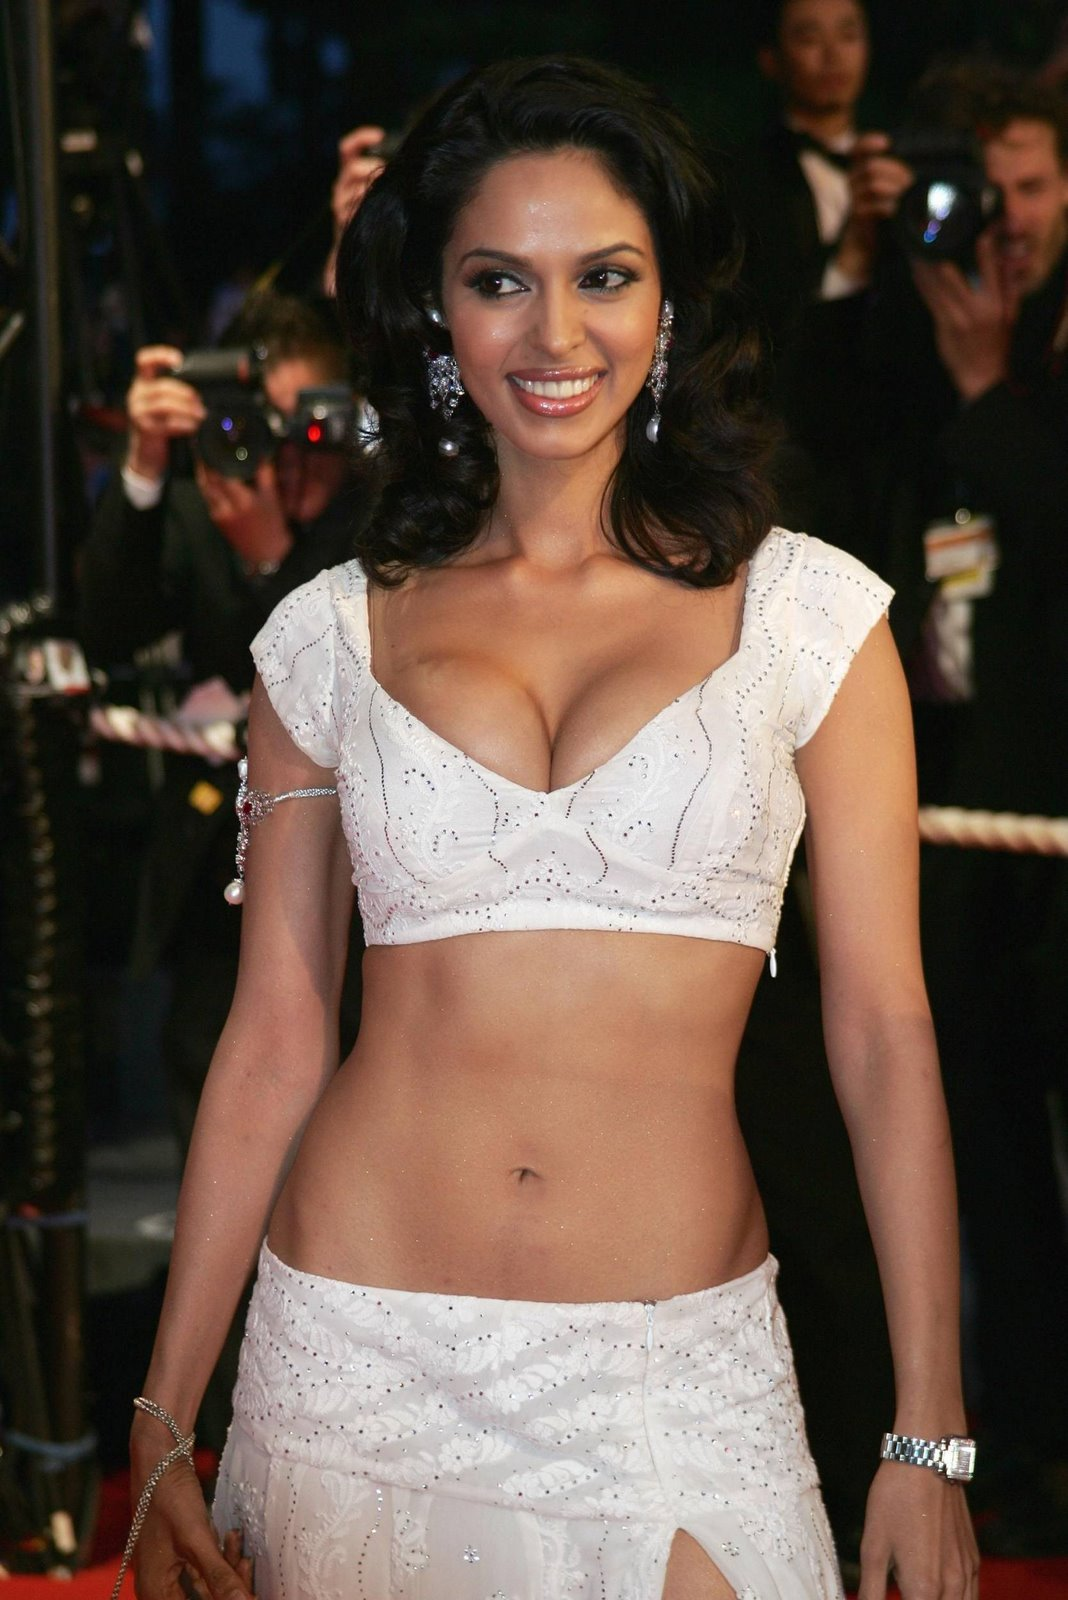 mallika sherawat hot picture